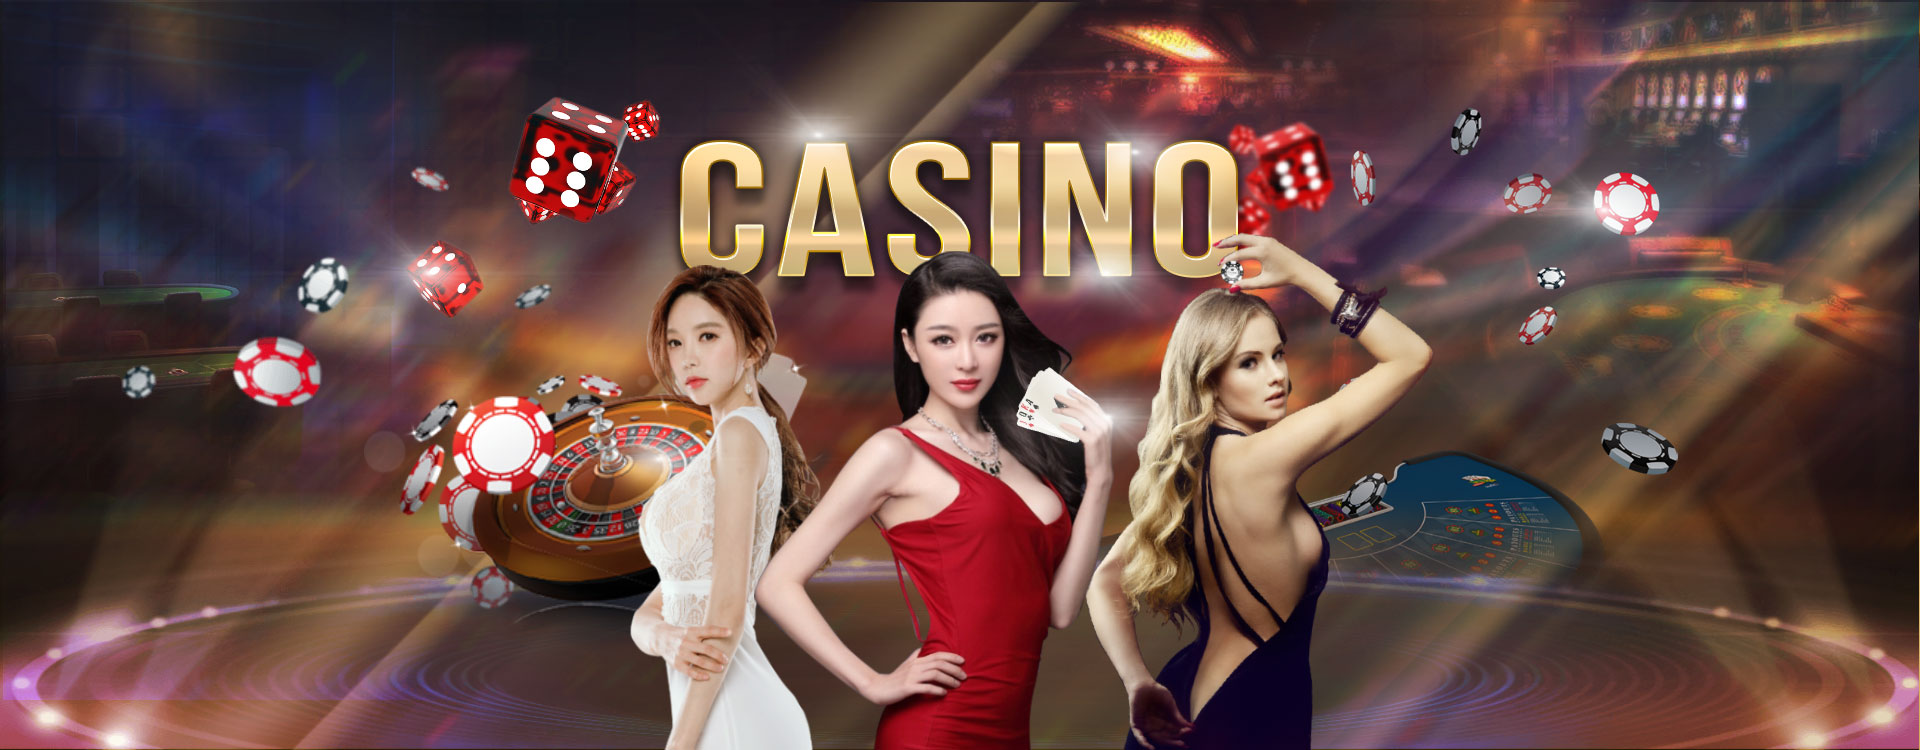 Do Not Fall For This Gambling Rip-off